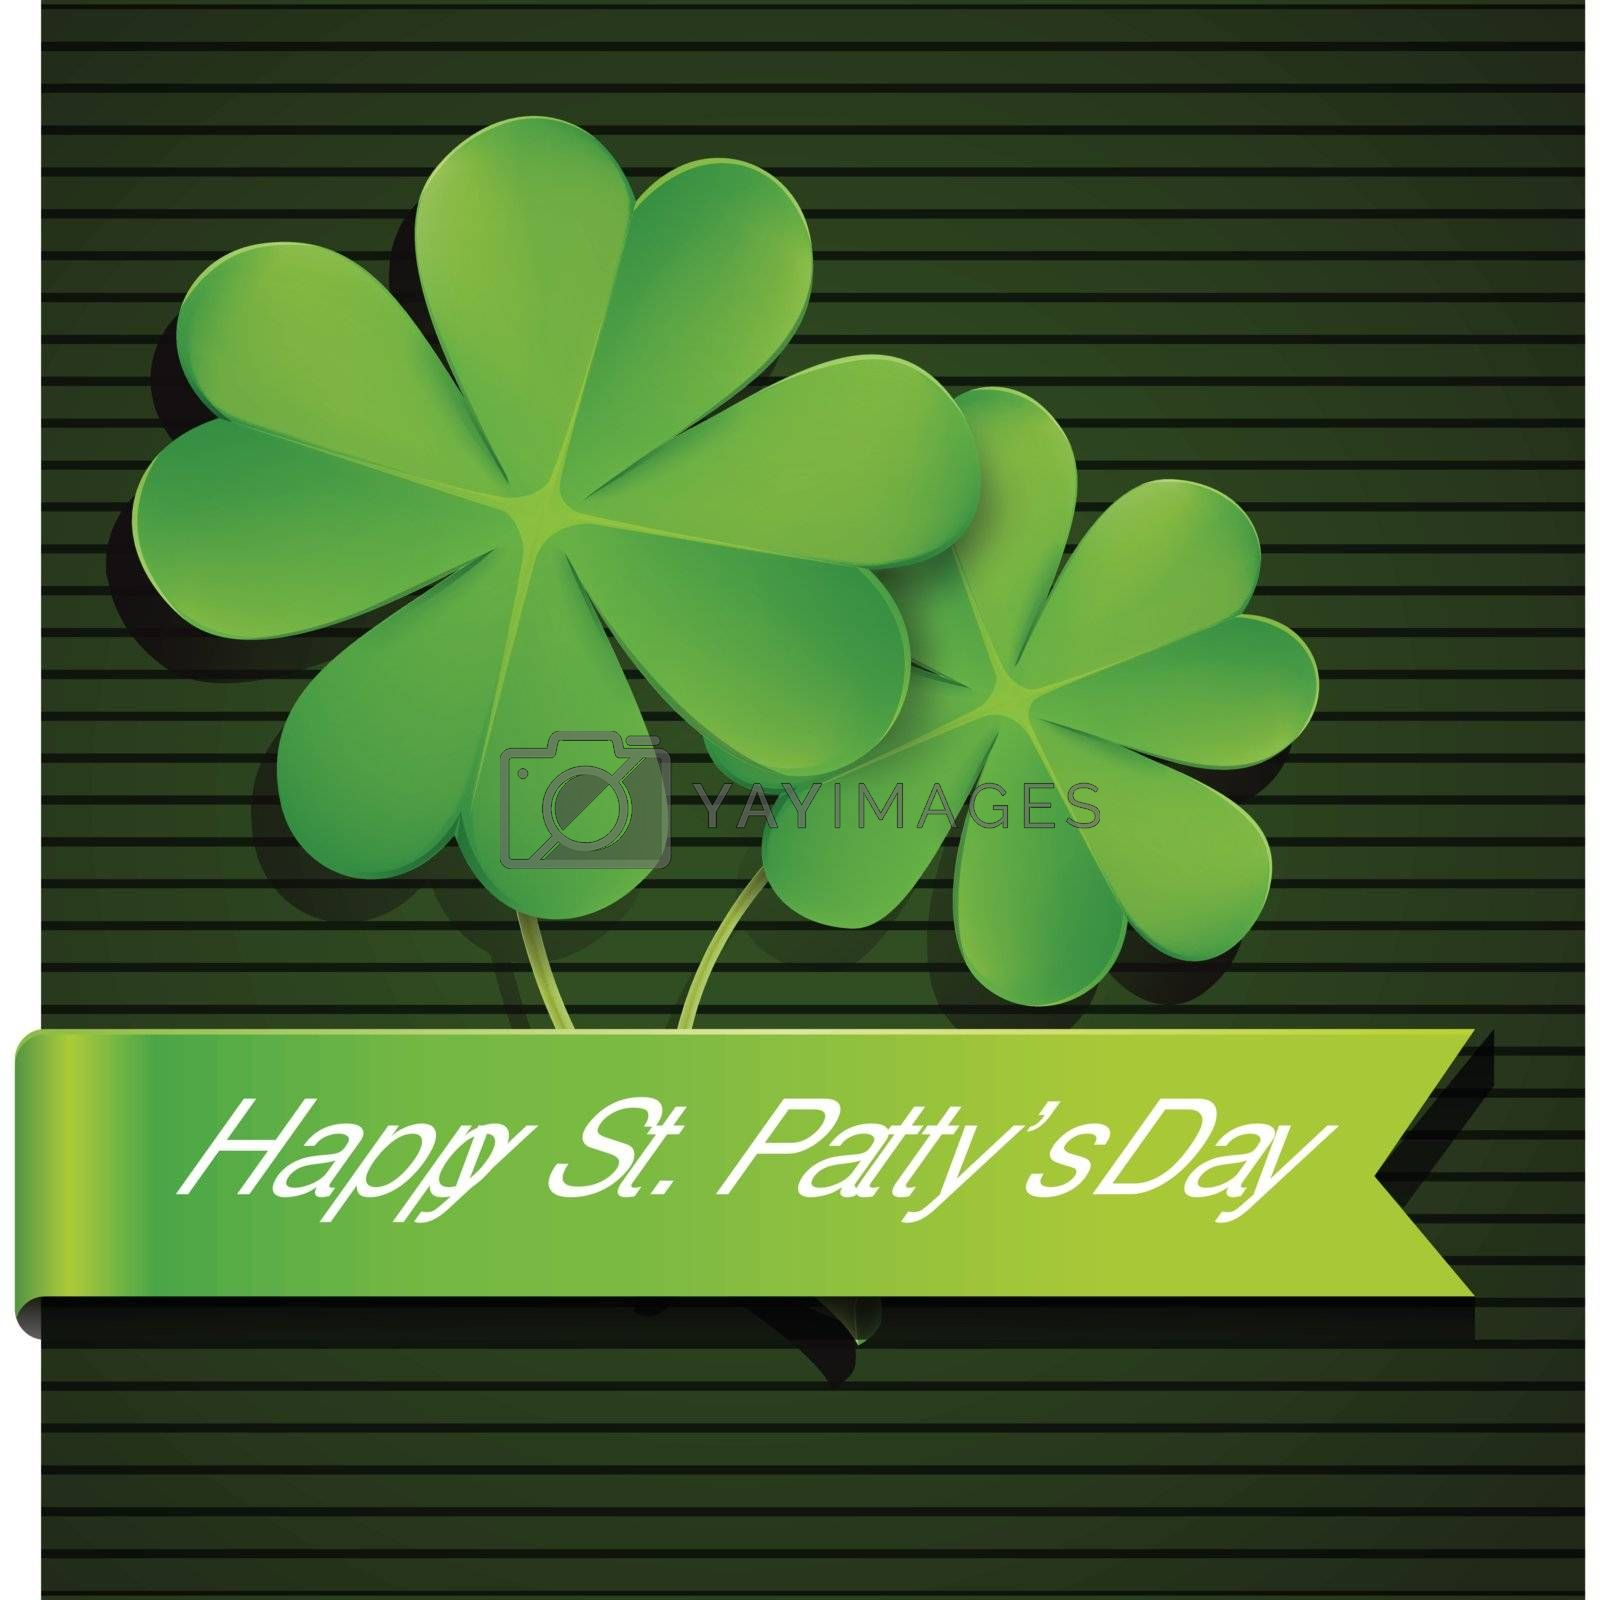 Shamrock, clover design, perfect for St  Patrick s Day by nirots